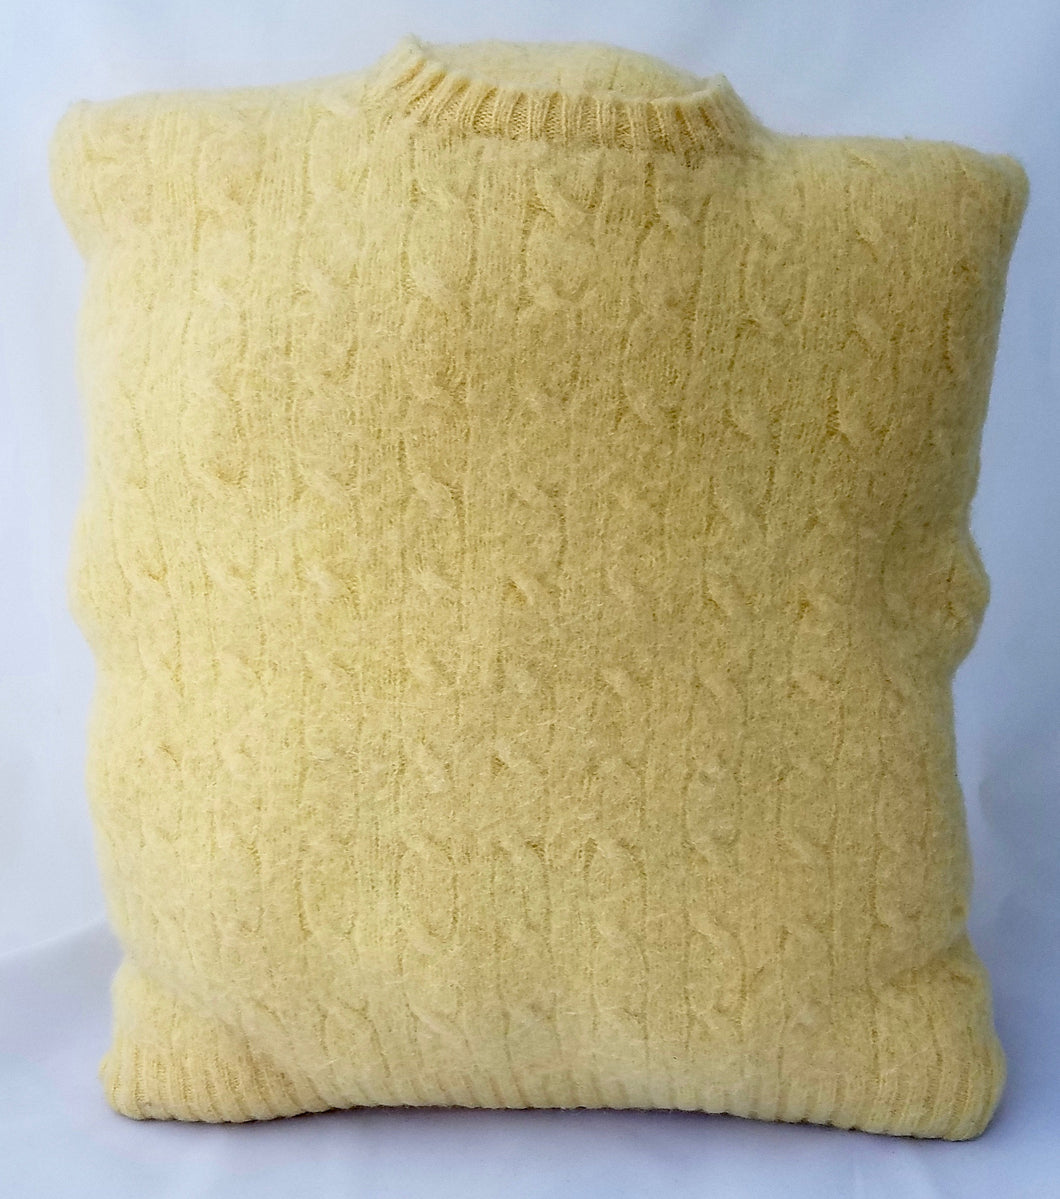 Upcycled Vintage Yellow Felted Cable Sweater Pillow